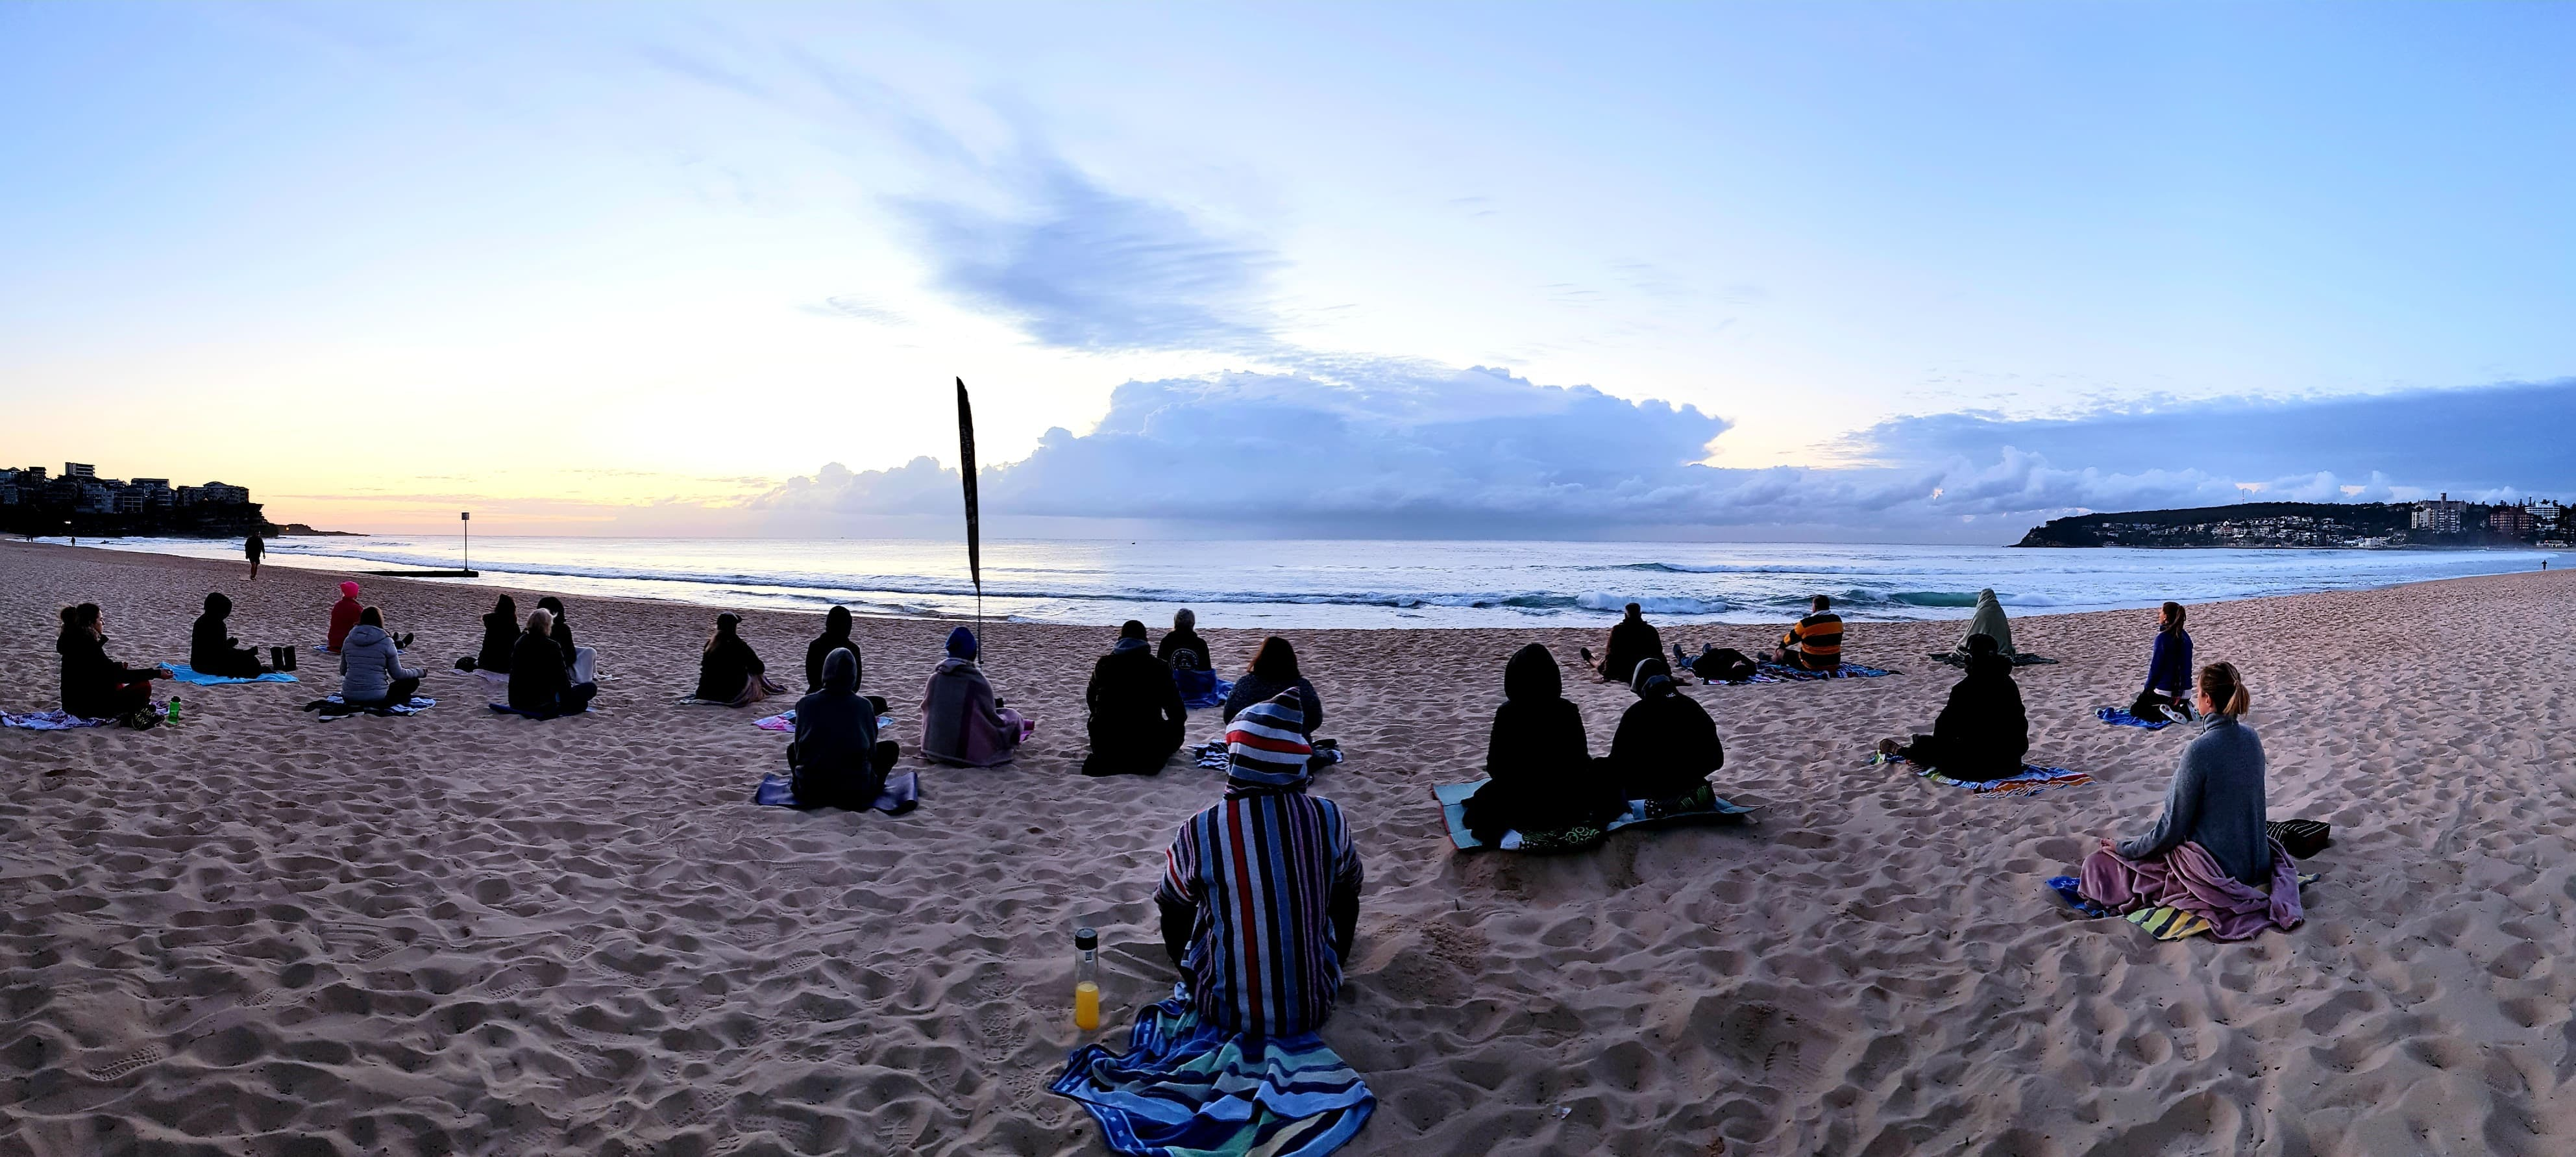 Making Meditation Mainstream Free Beach Meditation Sessions - Avalon Beach - Broome Tourism